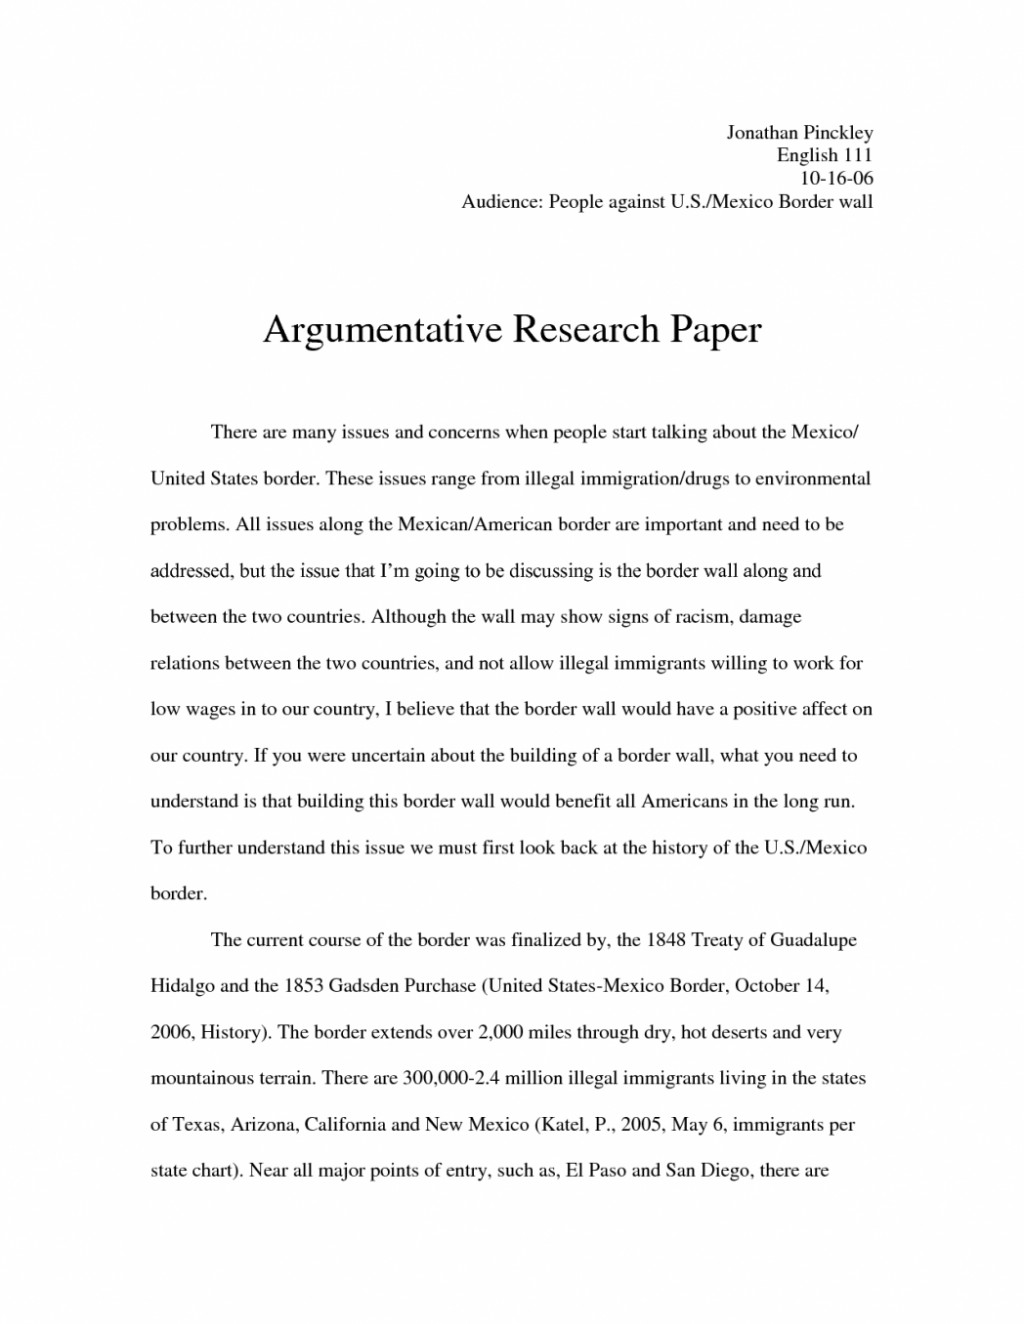 004 Argumentative Essay On Illegal Immigration Argument Research Persuasive Why Is Good Pgune Reform In America Topics Control Pro Thesis Rights 1048x1356 Exceptional Examples Outline Large